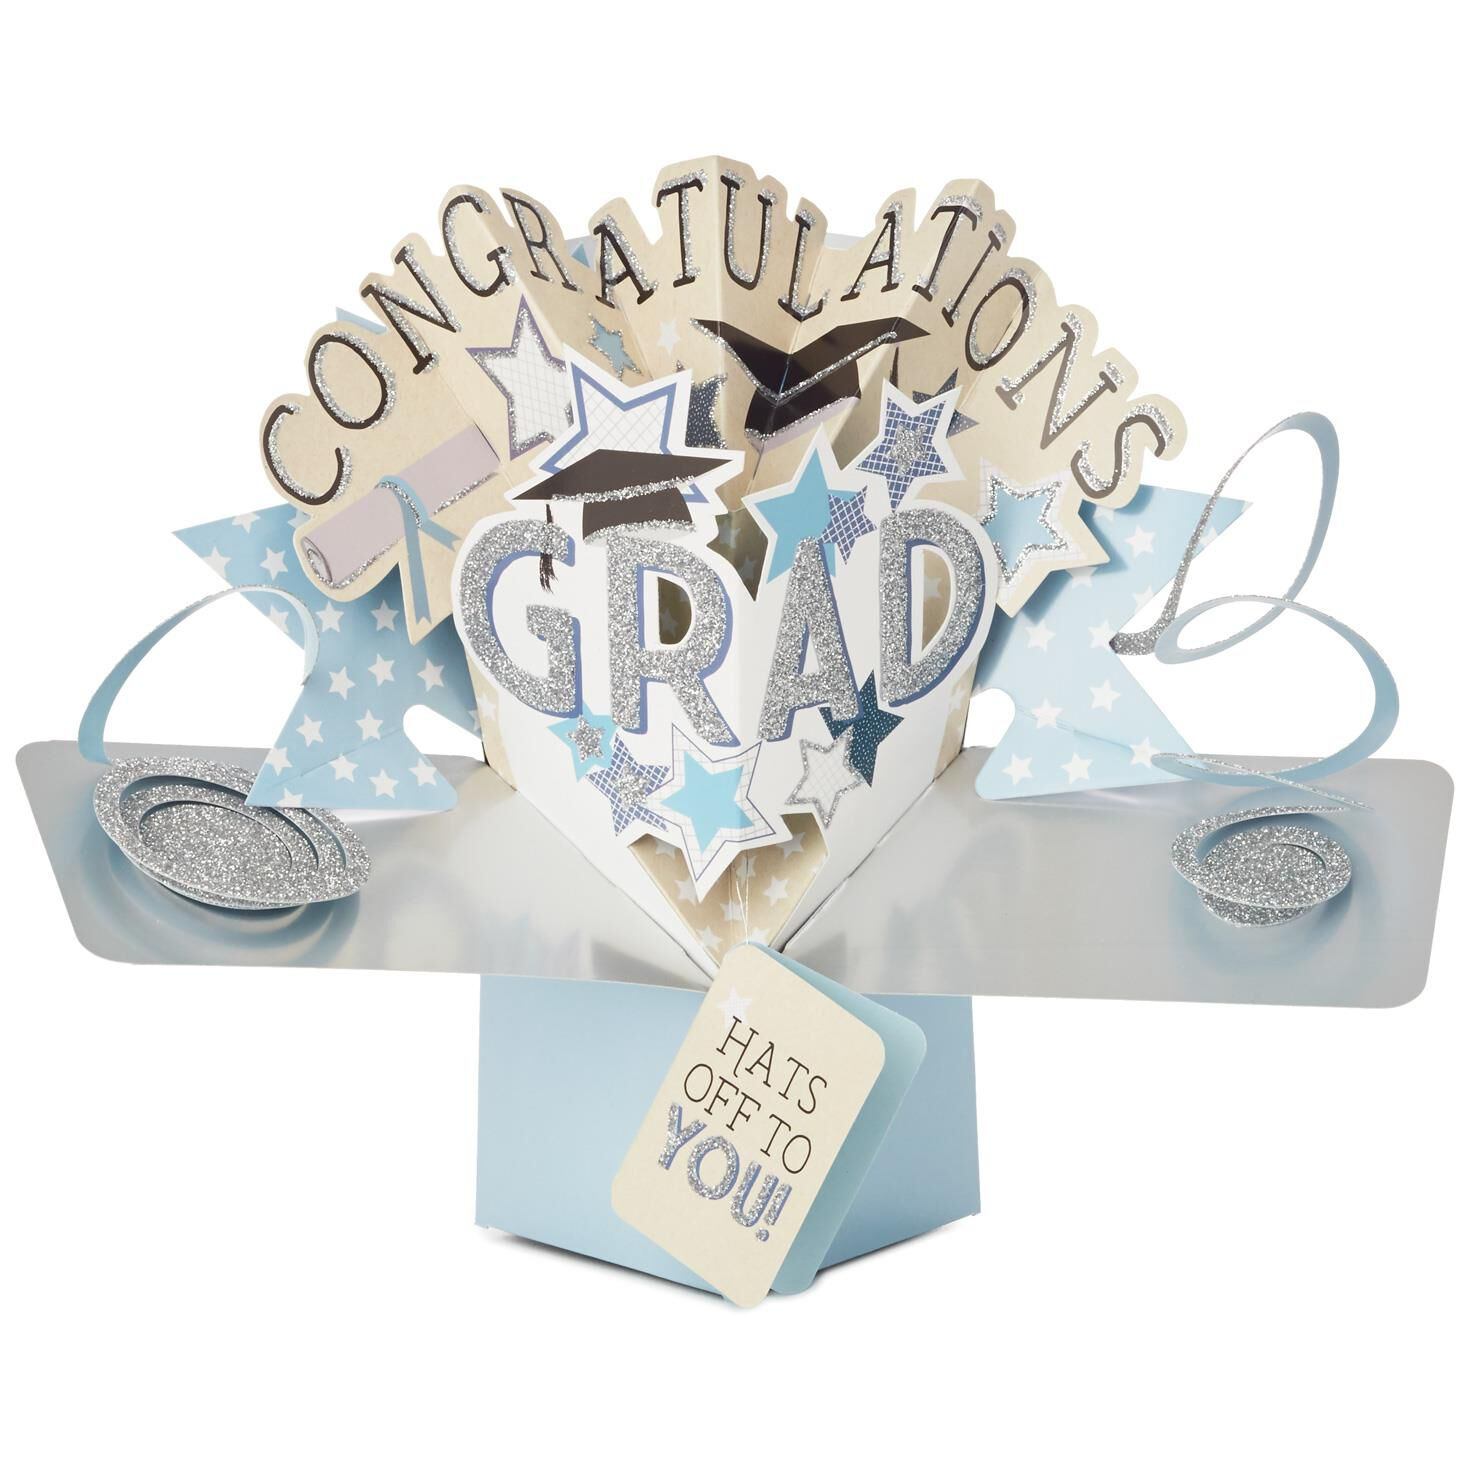 Hats Off to You Pop-Up Card for Him - Greeting Cards - Hallmark